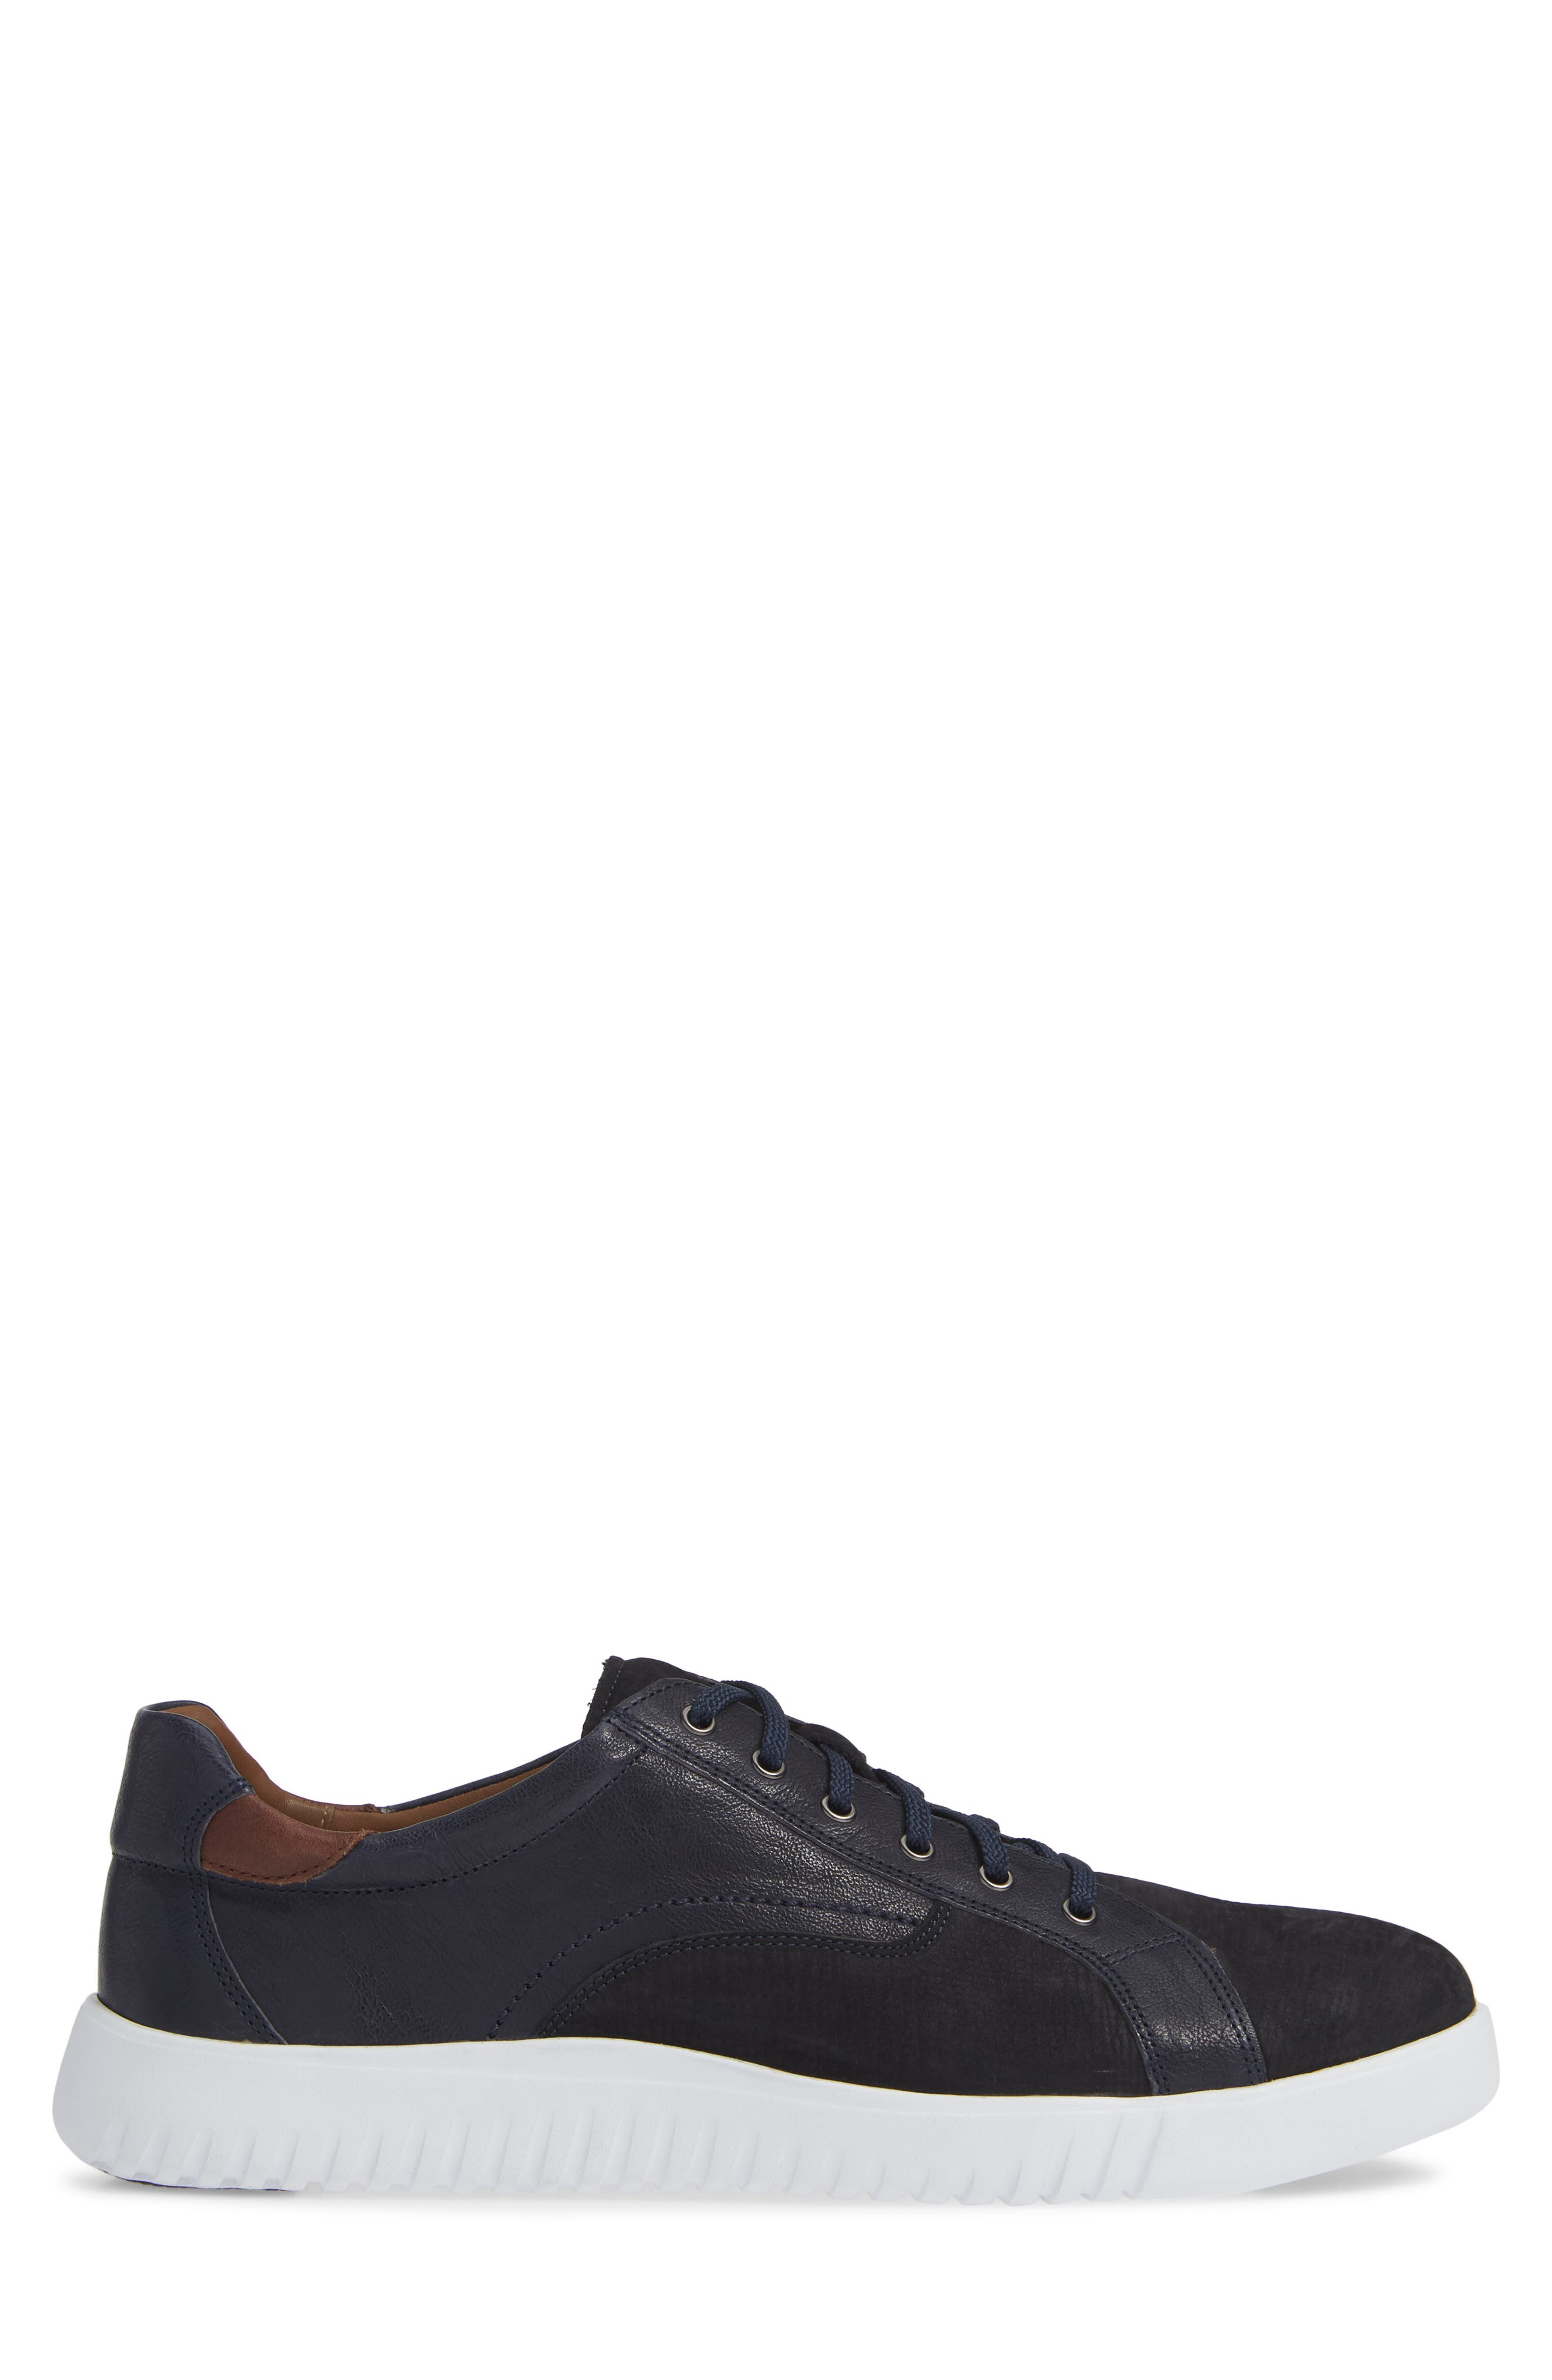 McFarland Sneaker,                             Alternate thumbnail 3, color,                             NAVY NUBUCK